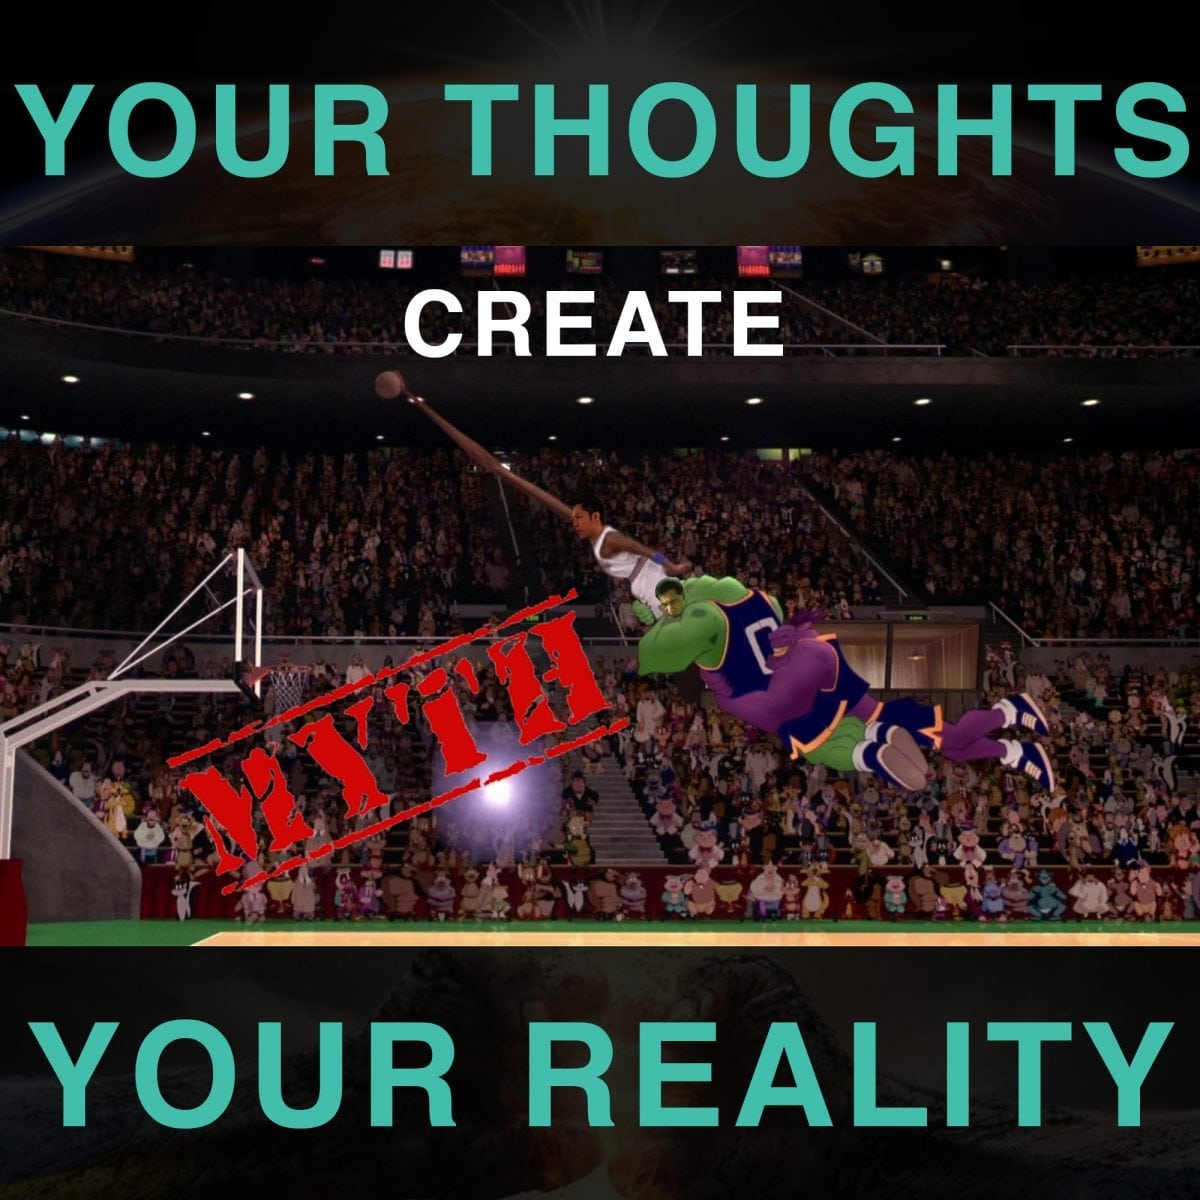 Your Thoughts Creates Your Reality